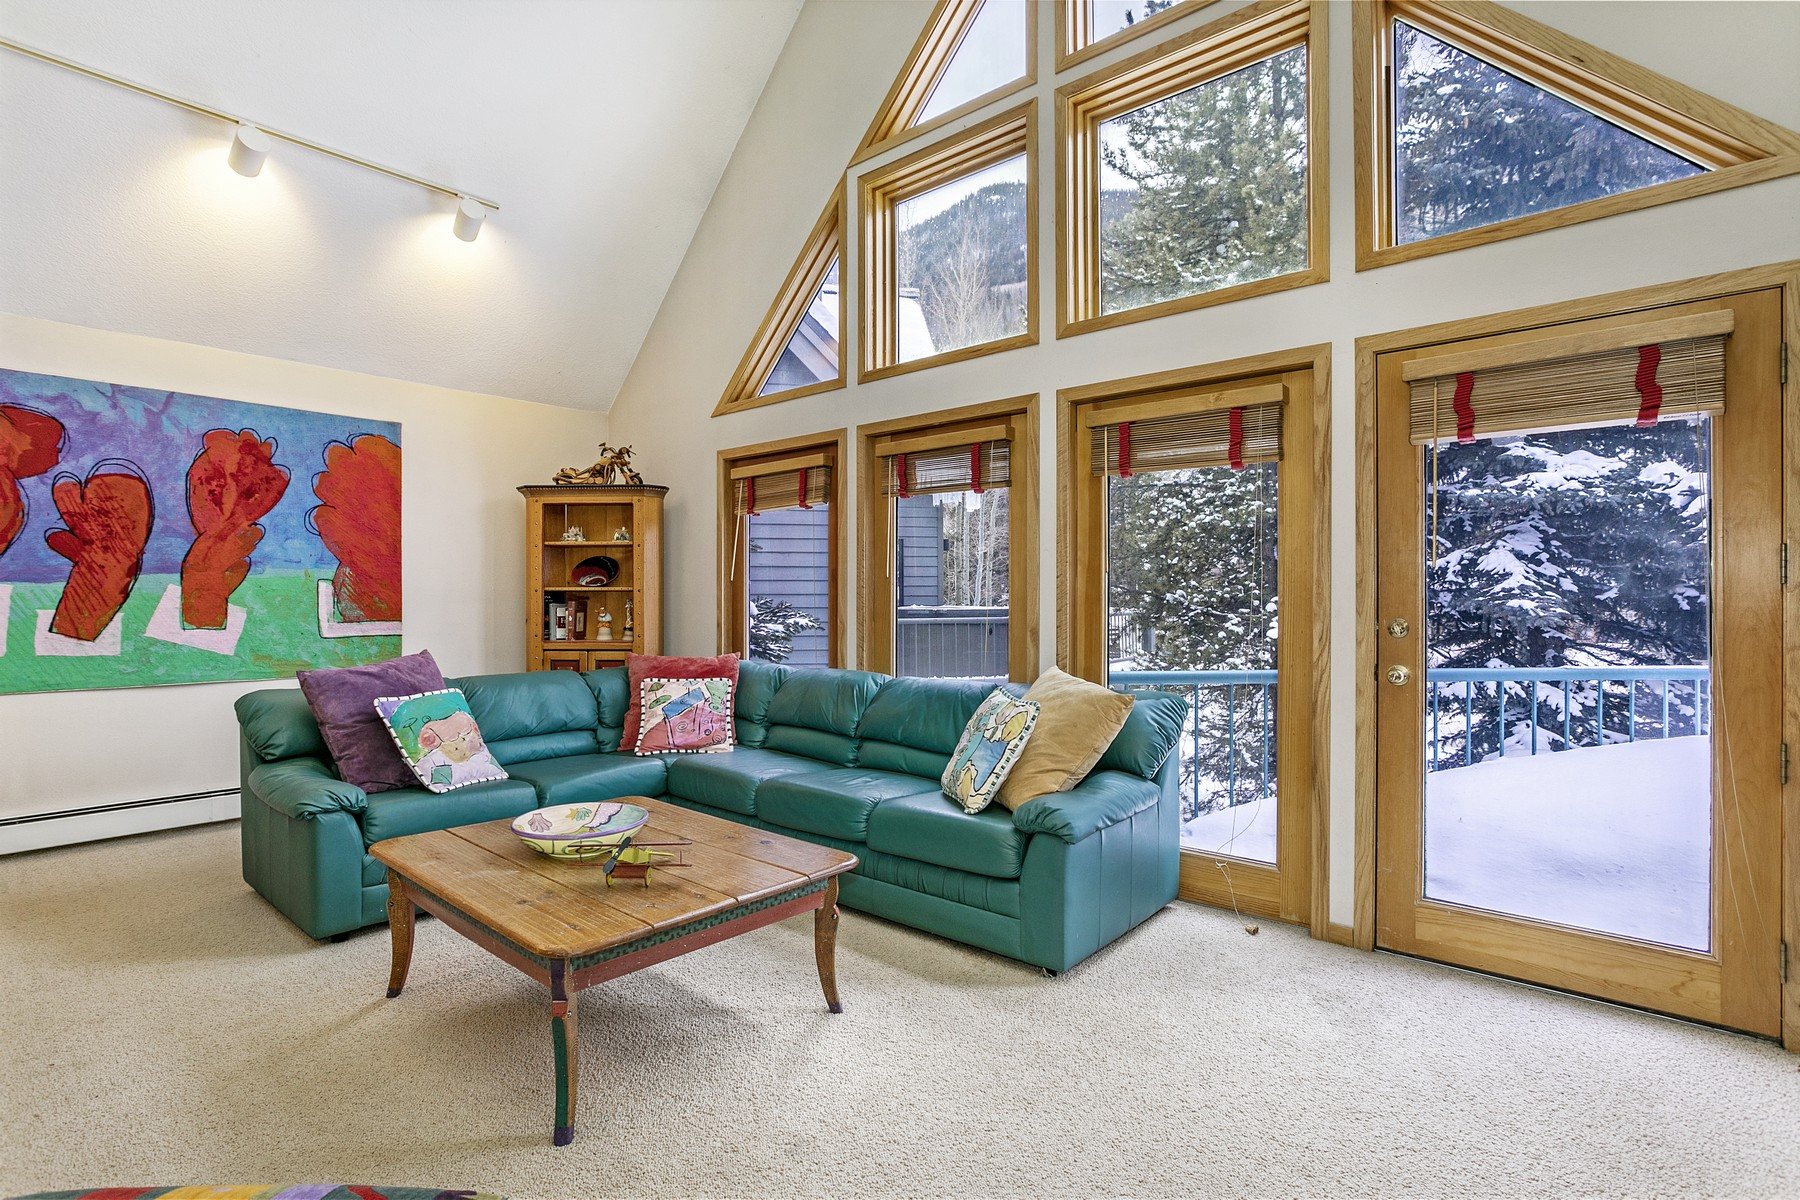 Single Family Home for Active at Outstanding opportunity to own a single family home in East Vail 3891 Big Horn Road #C Vail, Colorado 81657 United States